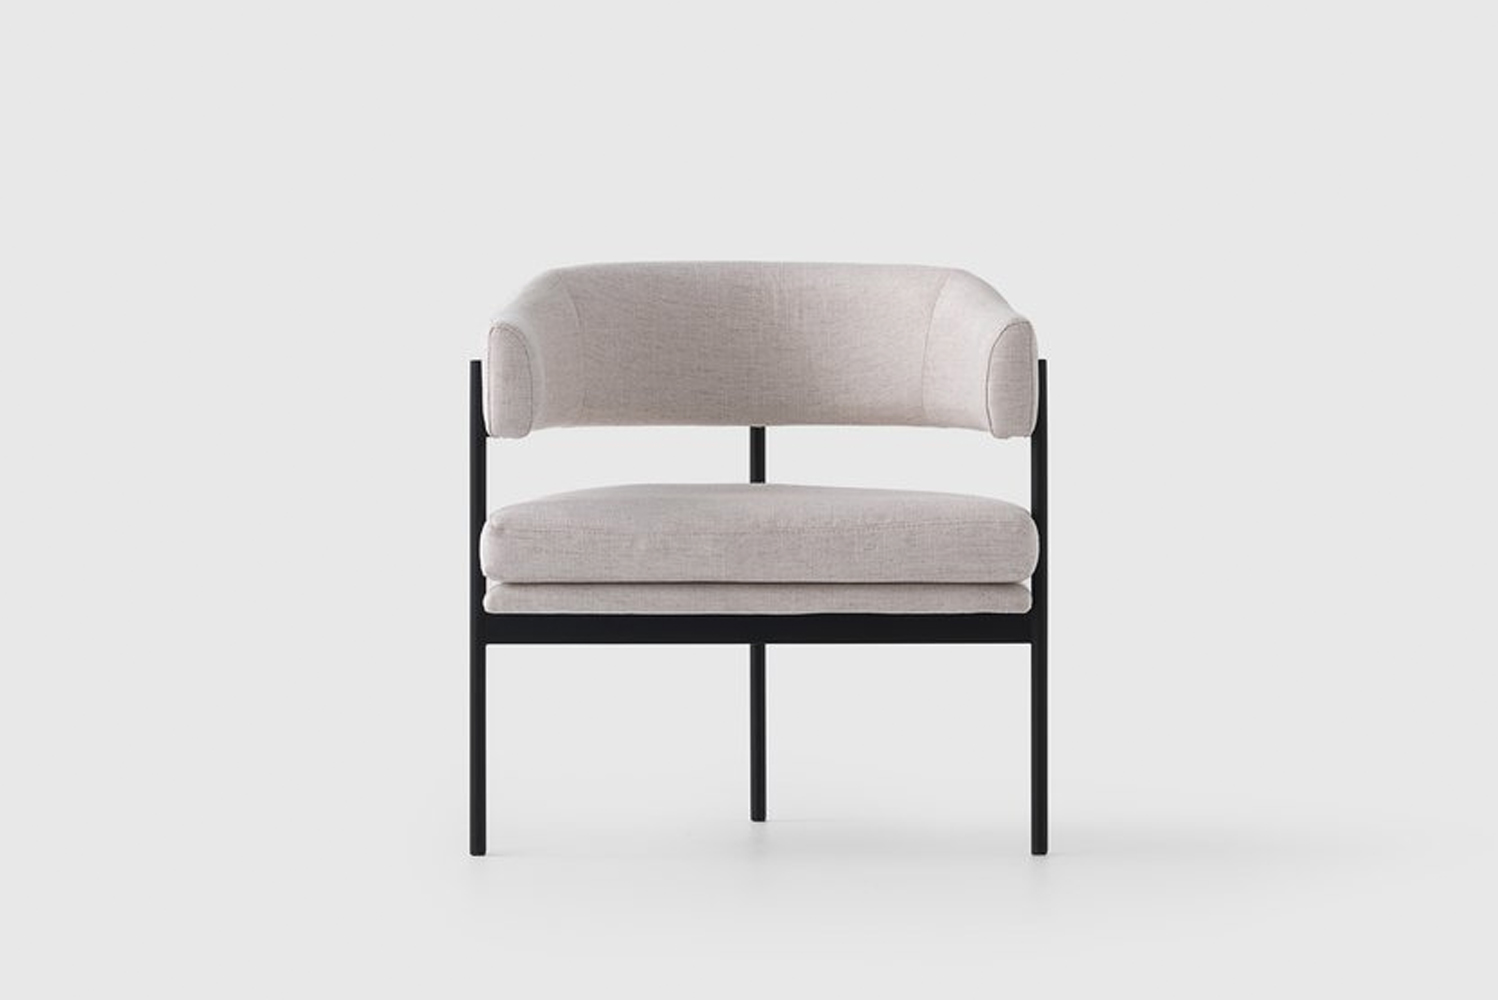 Its ultra slim three-legged steel base provides support and acts as a deliberate variant against a soft seat and tailored back cushion.